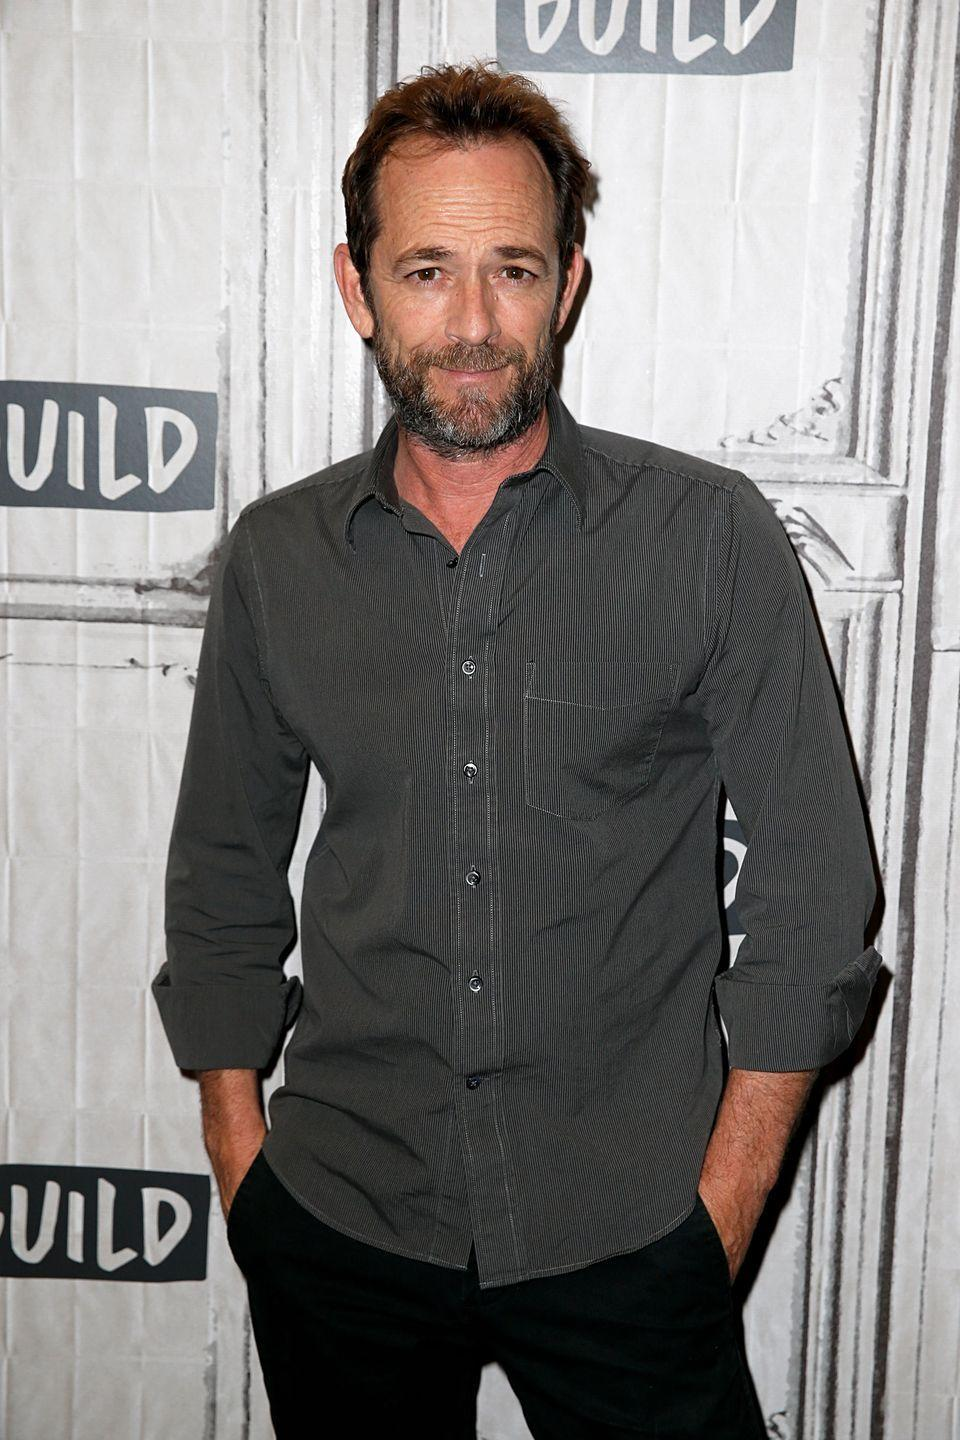 """<p>Luke <a href=""""https://www.cosmopolitan.com/entertainment/celebs/a26627403/luke-perry-death-stroke/"""" rel=""""nofollow noopener"""" target=""""_blank"""" data-ylk=""""slk:tragically passed away"""" class=""""link rapid-noclick-resp"""">tragically passed away</a> in 2019 at the age of 52. At the time, he was starring in <em>Riverdale </em>as Fred Andrews, Archie's dad. </p>"""